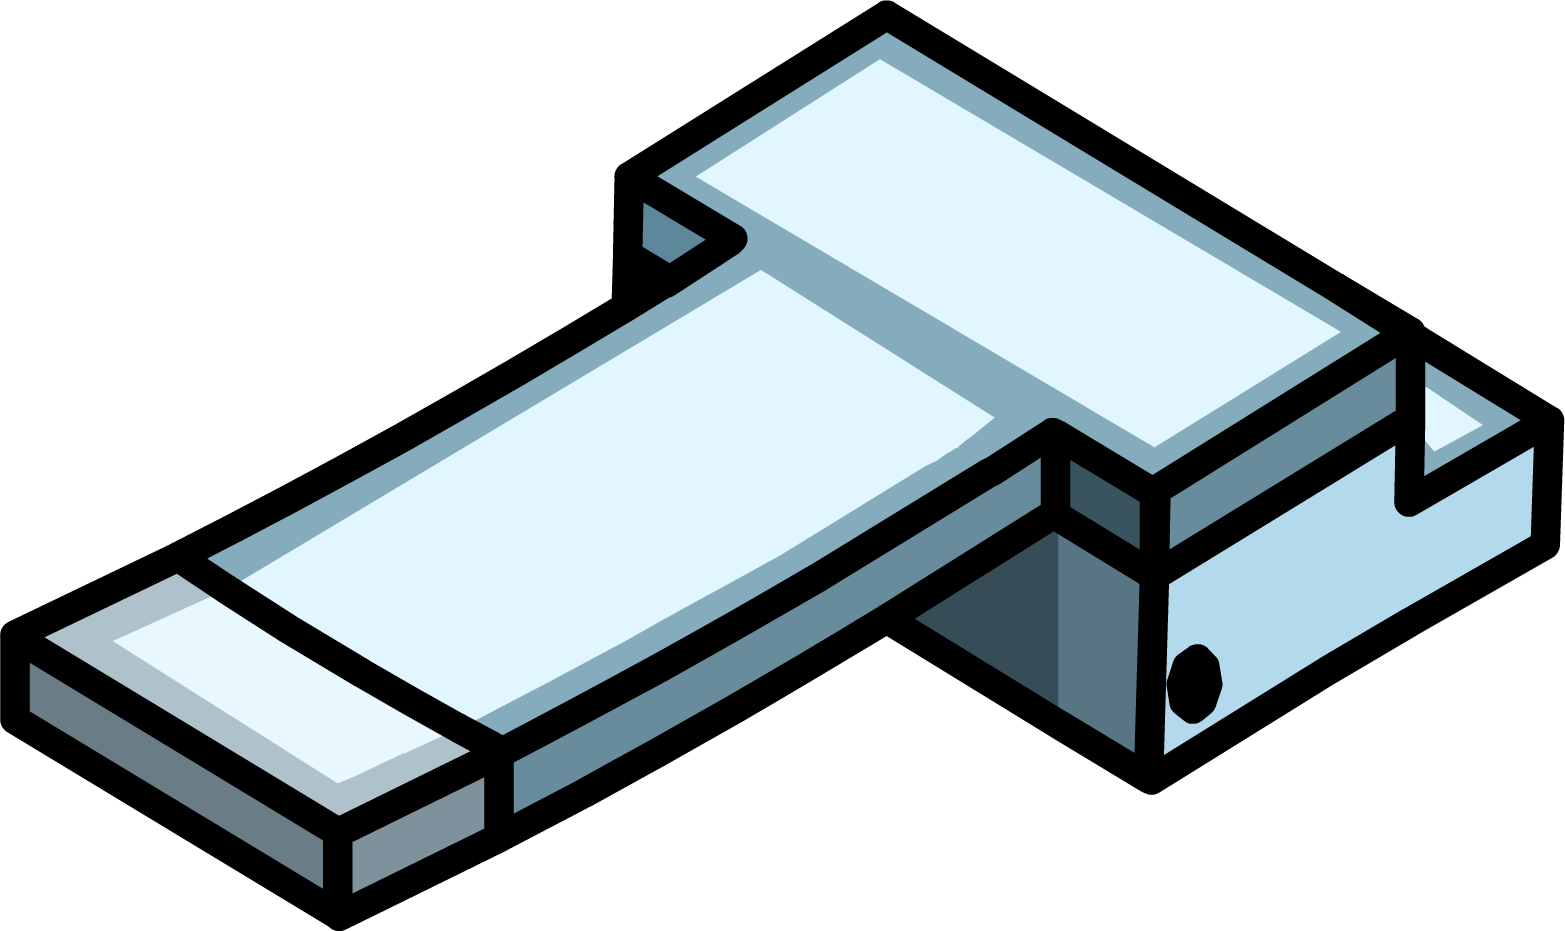 Diving clipart diving board. Club penguin wiki fandom